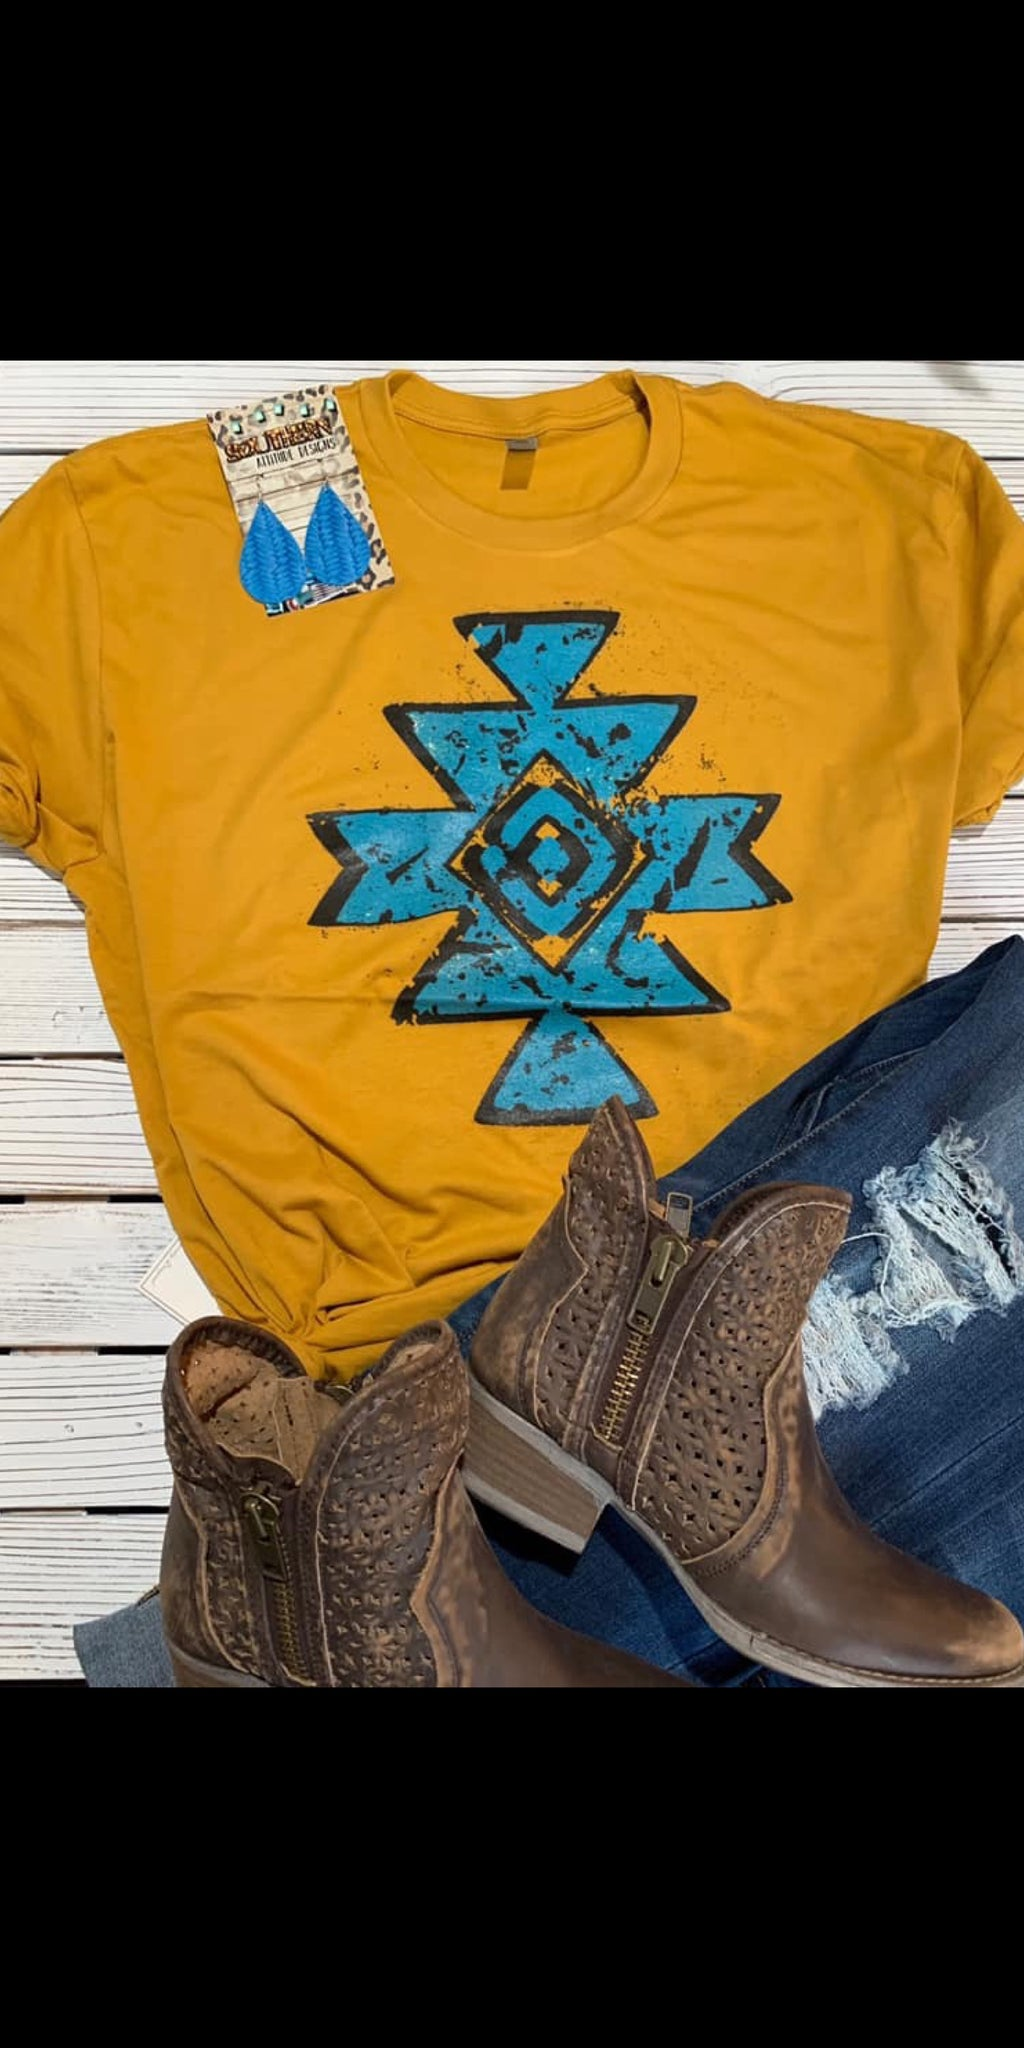 Quanah Mustard Turquoise Aztec Top - Also in Plus Size